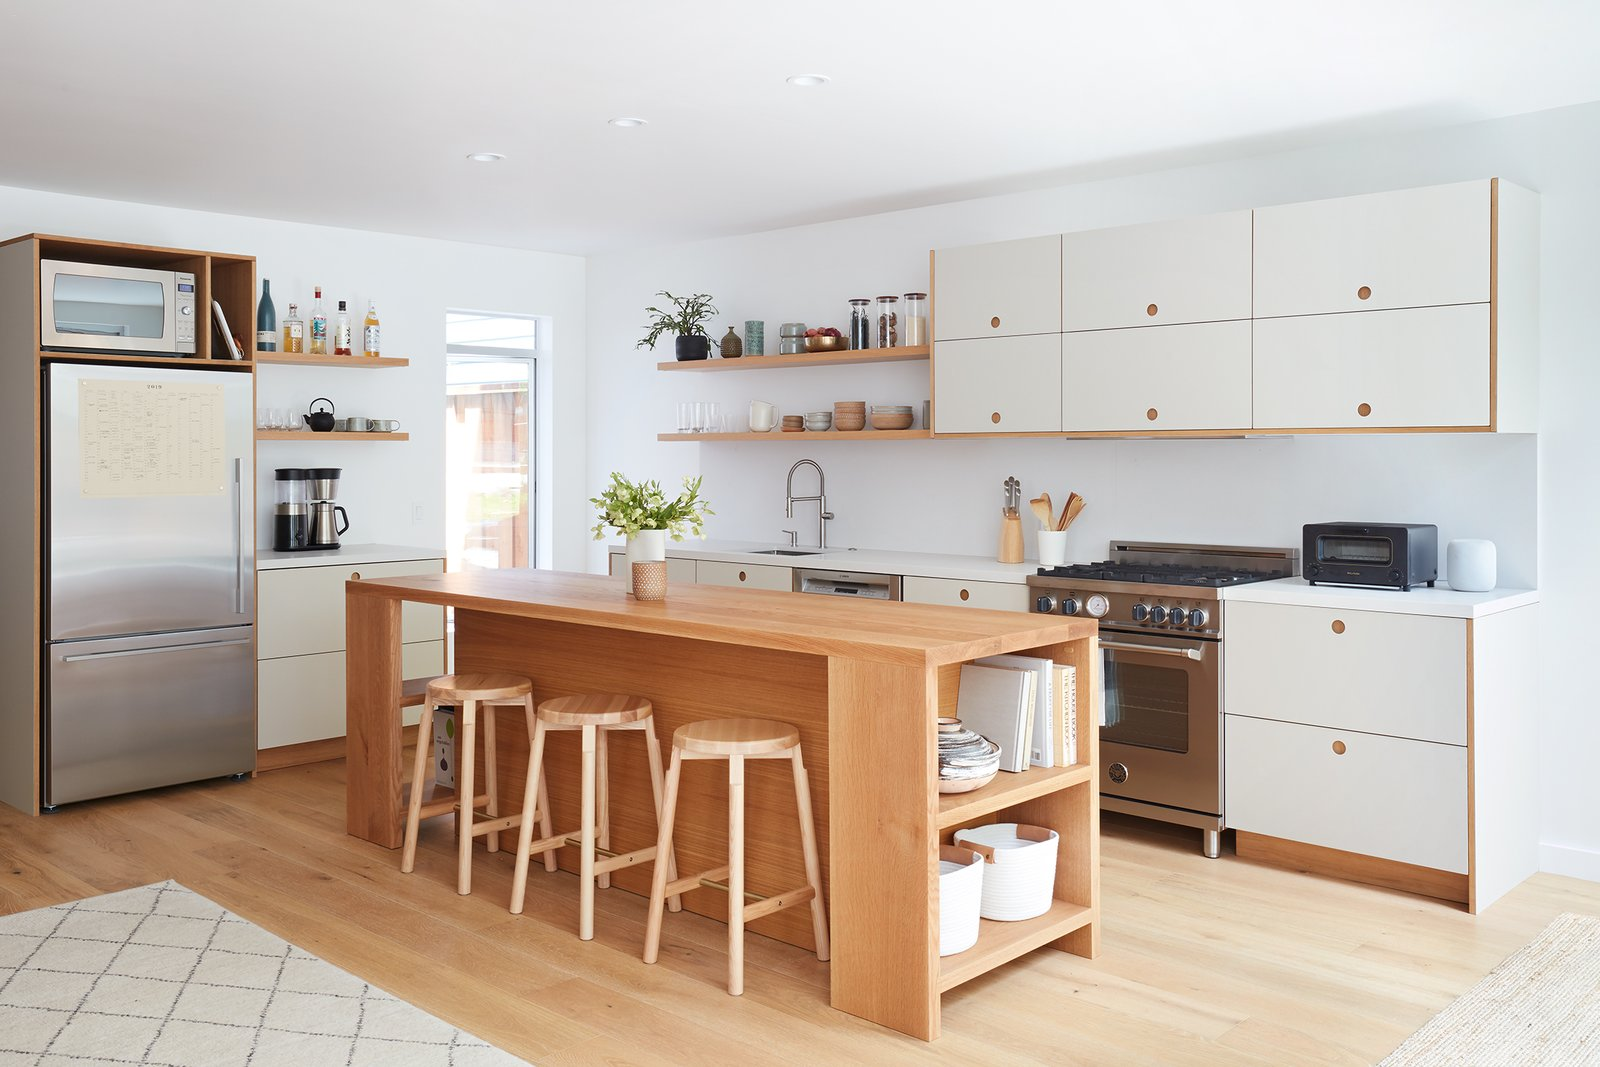 15 Lustrous Kitchens That Make Smart Use Of Laminate Cabinets Dwell